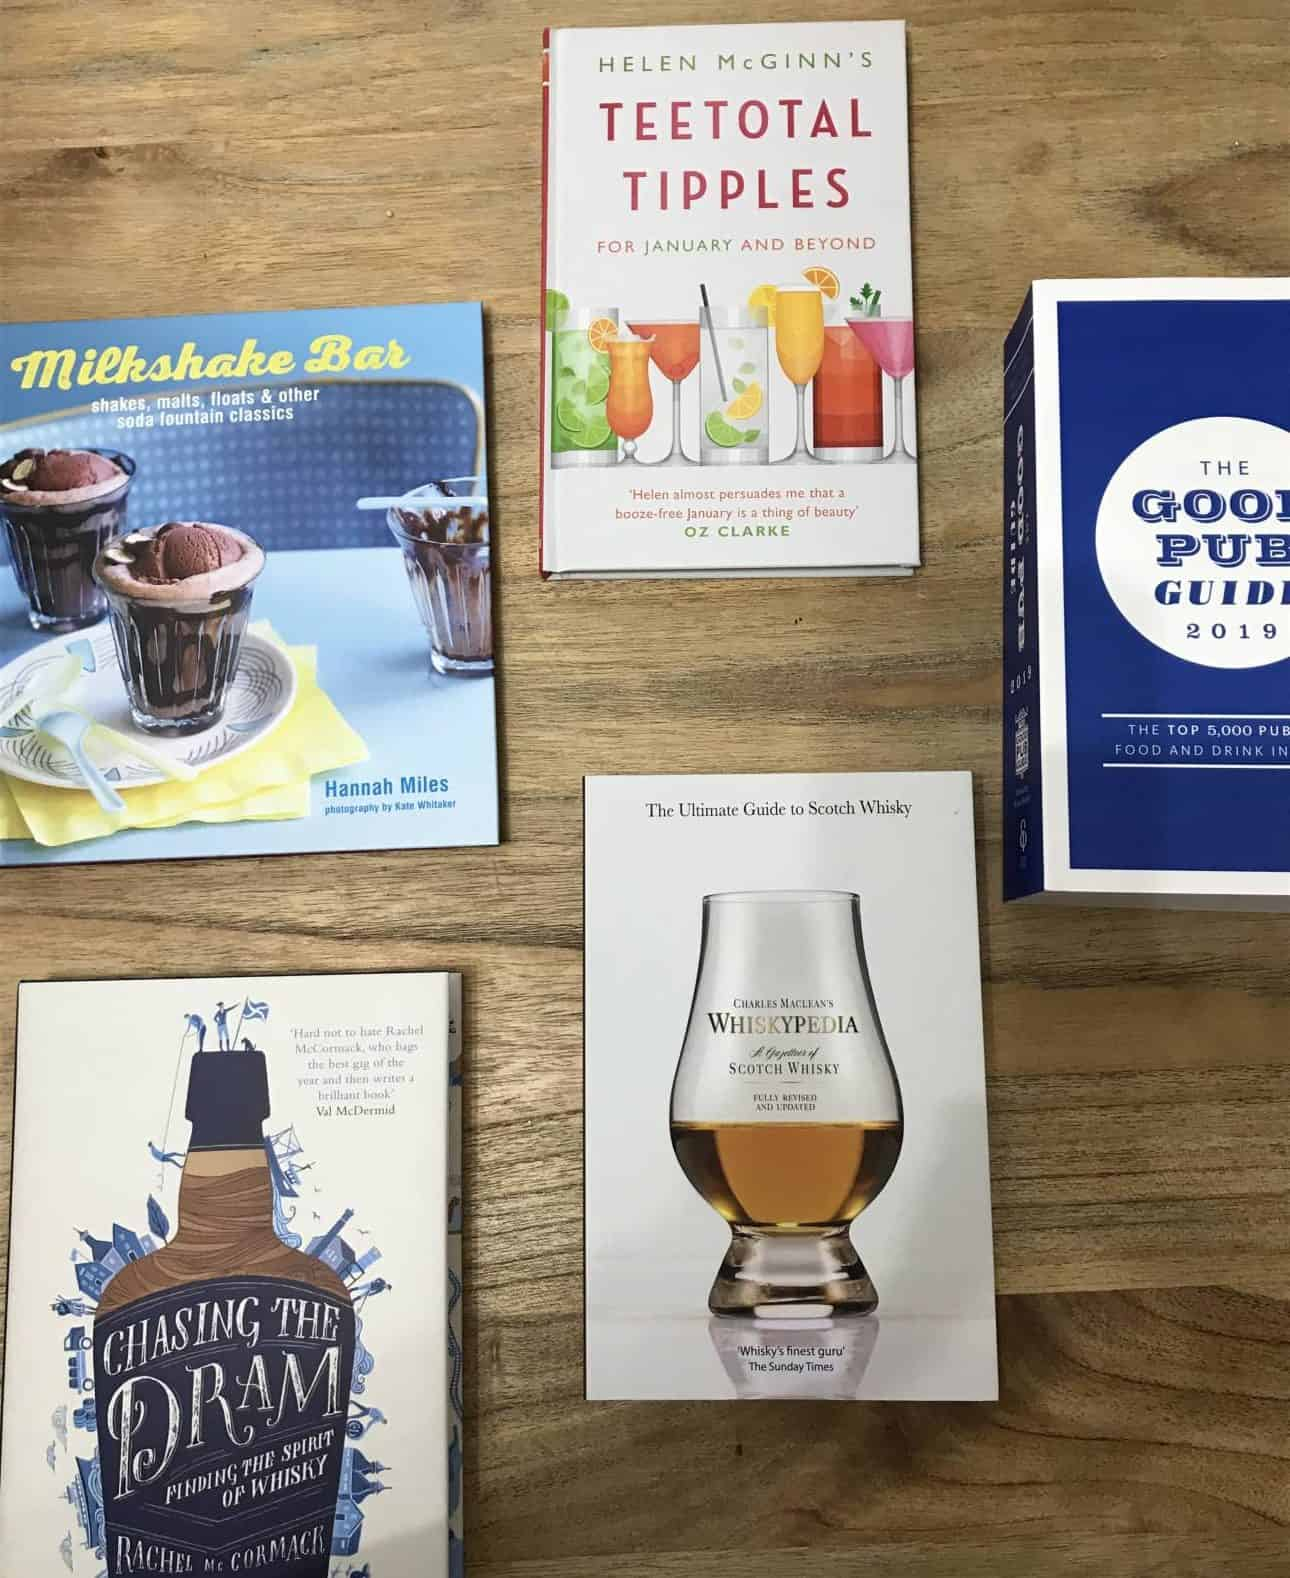 drinks book from the Book People